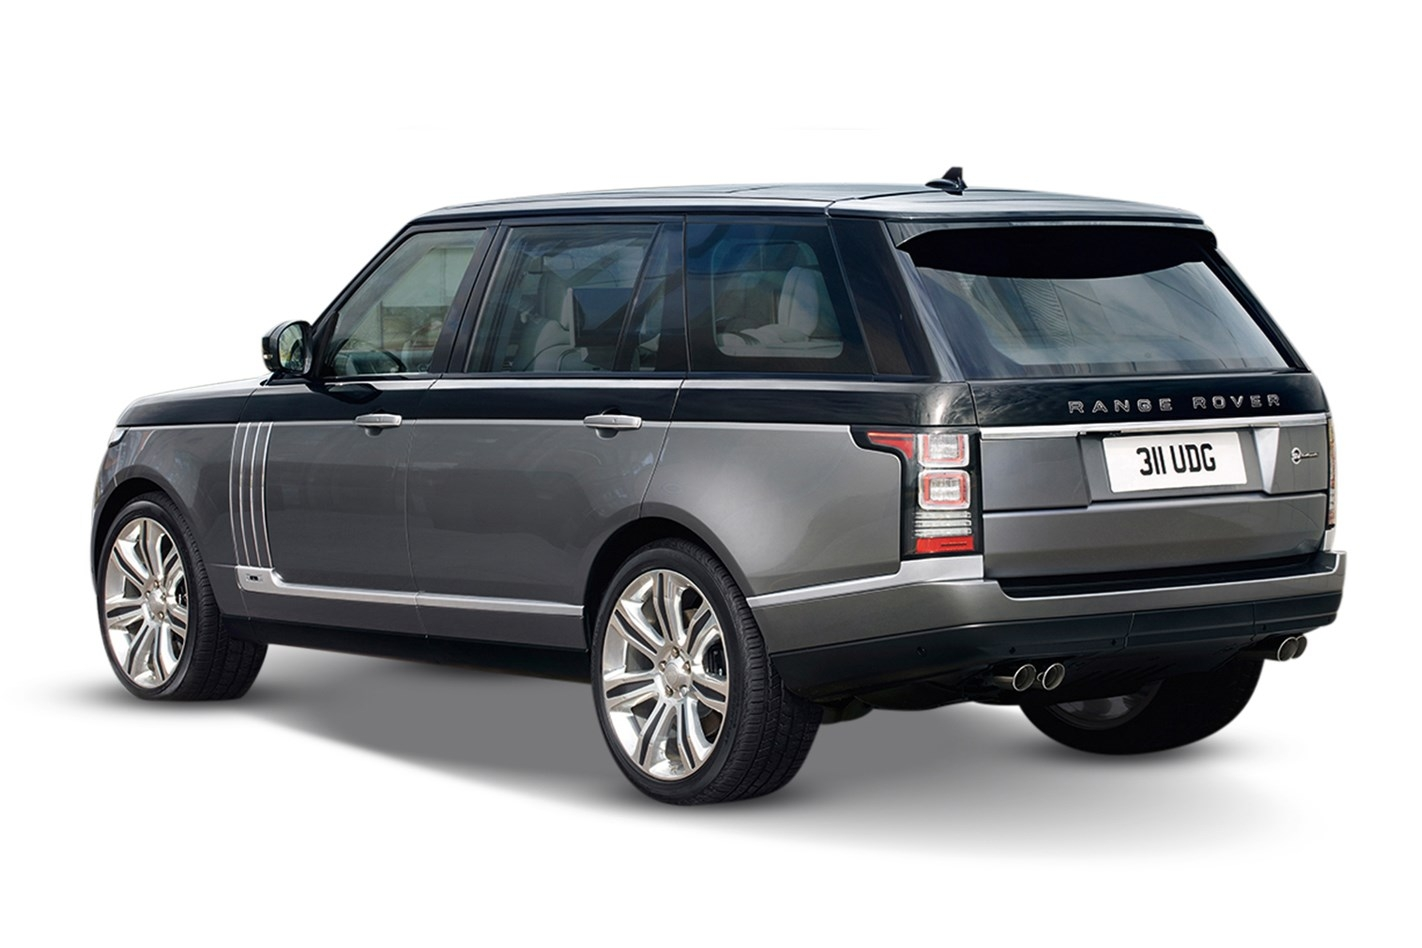 Range Rover Vogue Diesel In Munich Hire Car Rental Pd Cars Com